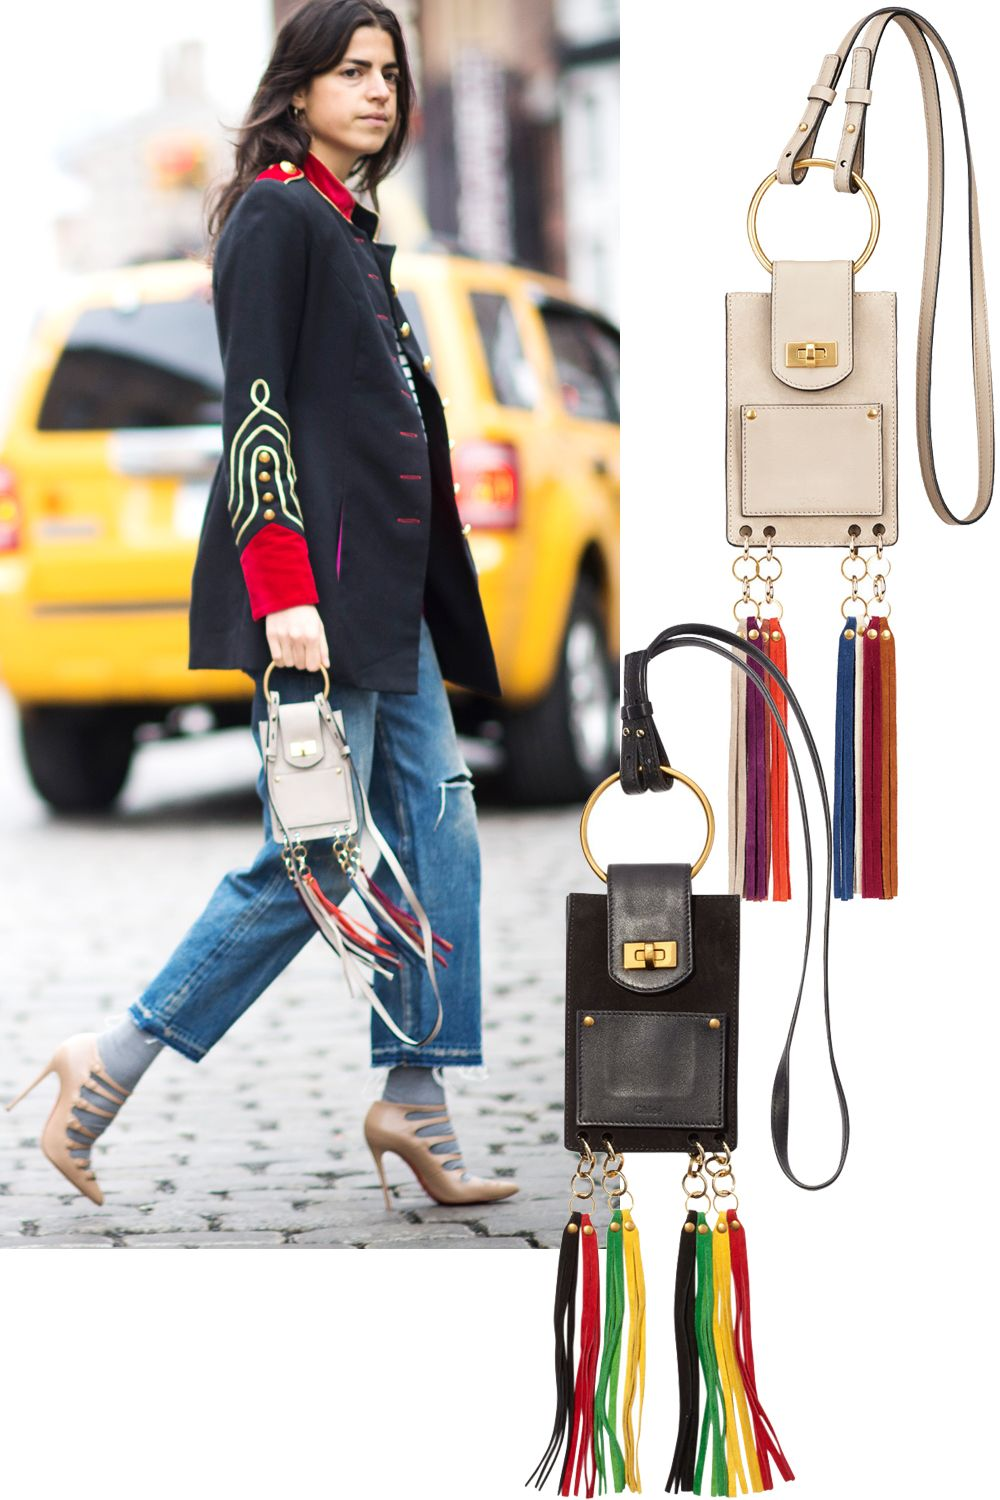 "<p>Leandra Medine was one of the many front-row folk who got their hands on the Chloé ""Jane"" bag—the micro accessory of the moment.</p><p><em><strong>Chloé</strong> gray ""Jane"" bag, $990, <a href=""https://shop.harpersbazaar.com/designers/c/chlo/jane-mini-bracelet-bag-8006.html"" target=""_blank""><strong>shopBAZAAR.com</strong></a></em><em>&#x3B; <strong>Chloé</strong><span class=""redactor-invisible-space""> black ""Jane"" bag, <strong><a href=""https://shop.harpersbazaar.com/designers/c/chlo/jane-mini-bracelet-bag-with-tassels-8028.html"" target=""_blank"">shopBAZAAR.com</a></strong>.</span></em><br></p>"